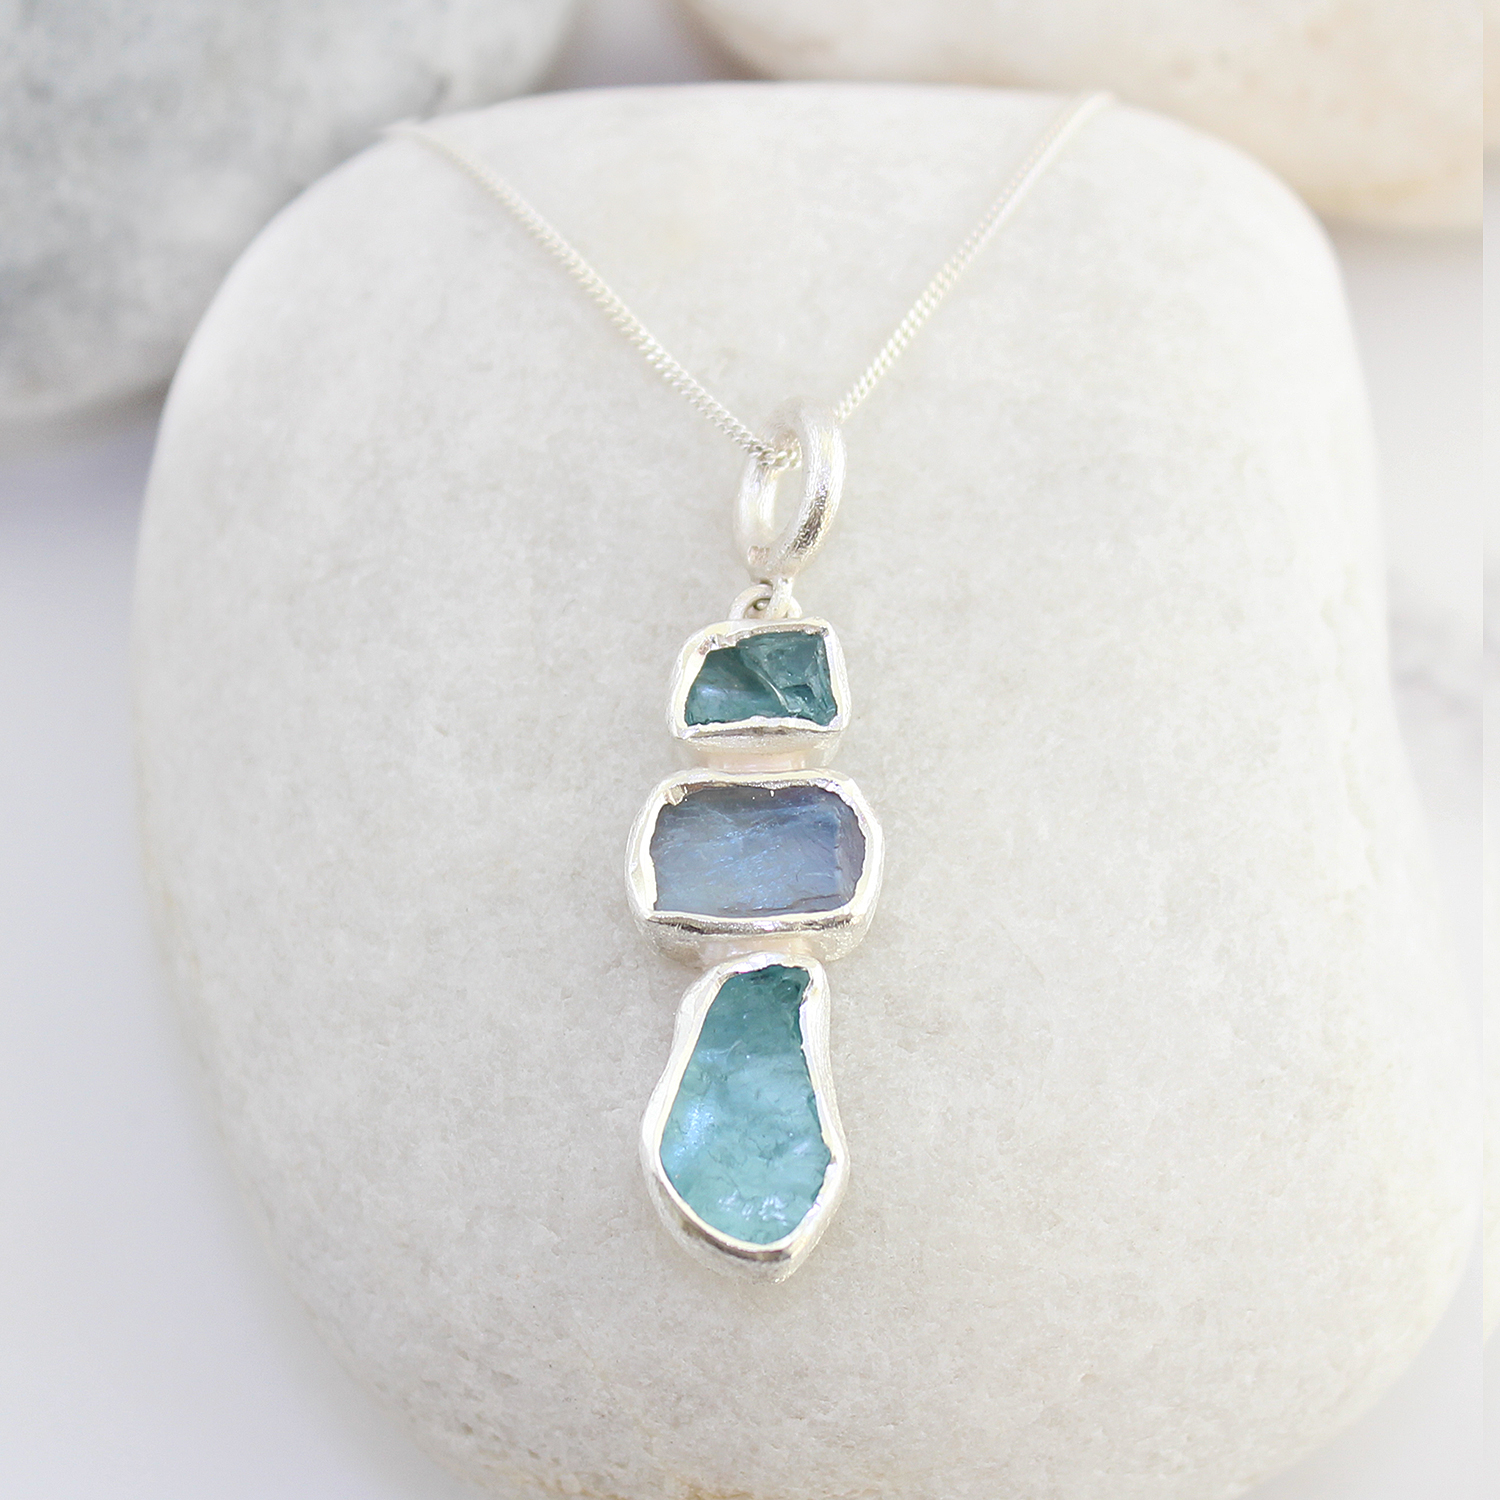 aquamarine teardrop pendant pdp buyewa com john at lewis rsp online johnlewis necklace ewa main